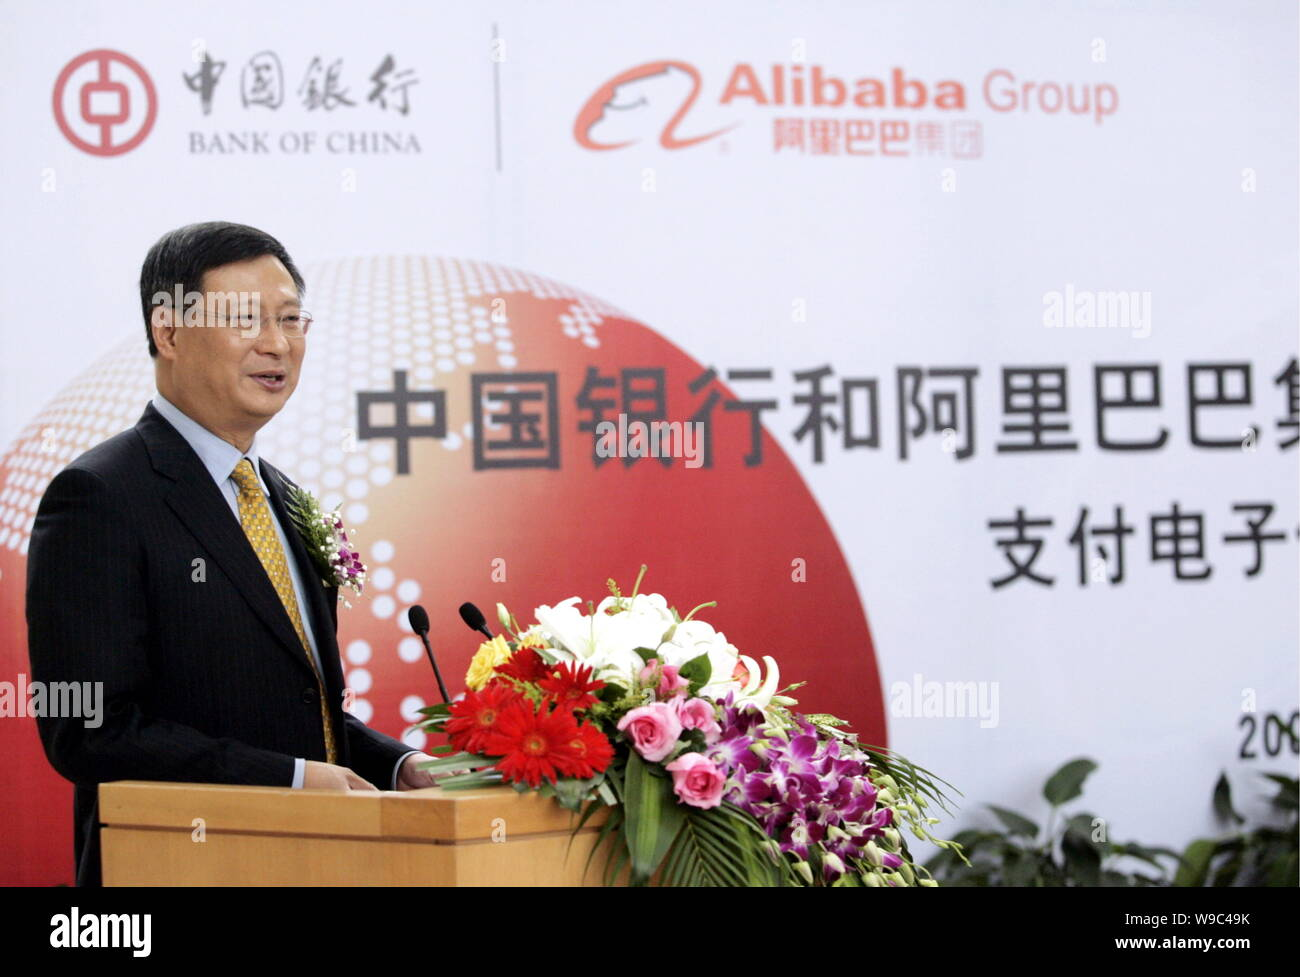 Li Lihui, Former President of Bank of China: We are in a